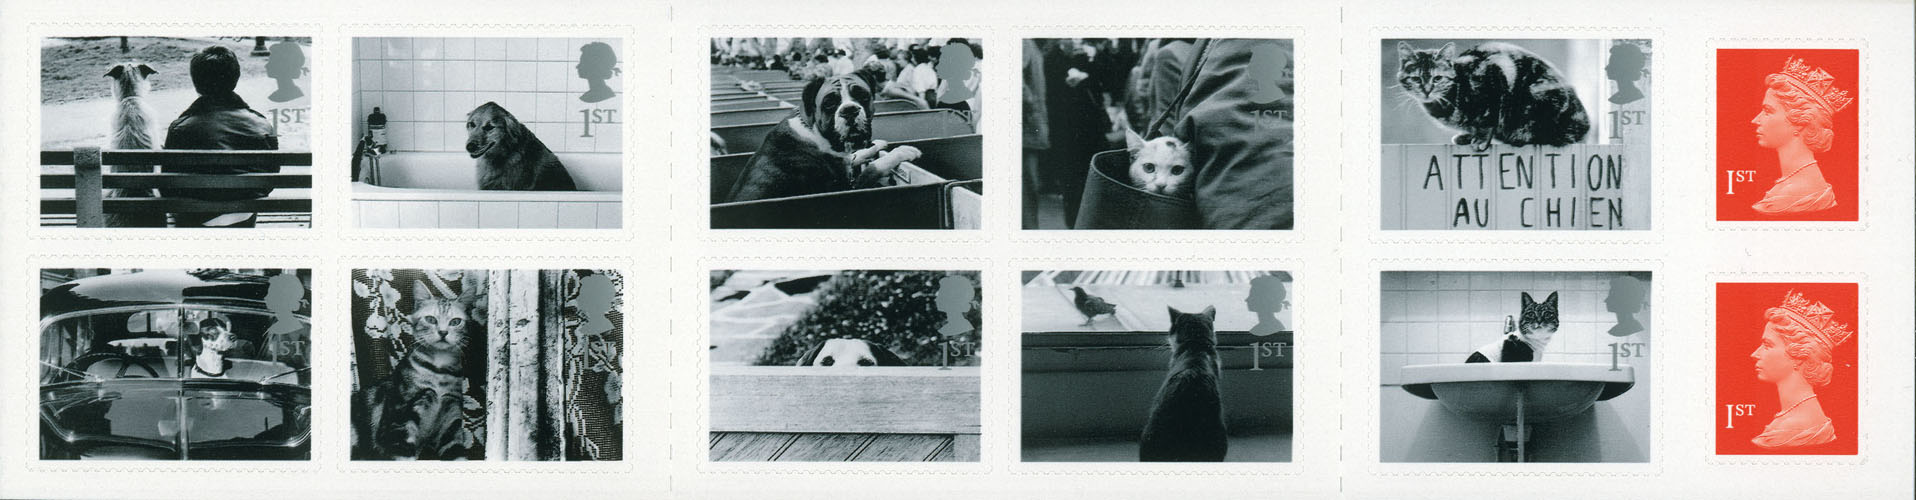 2001 GB - PM1 10 x 1st Cats and Dogs Booklet + 2 x 1st Flame